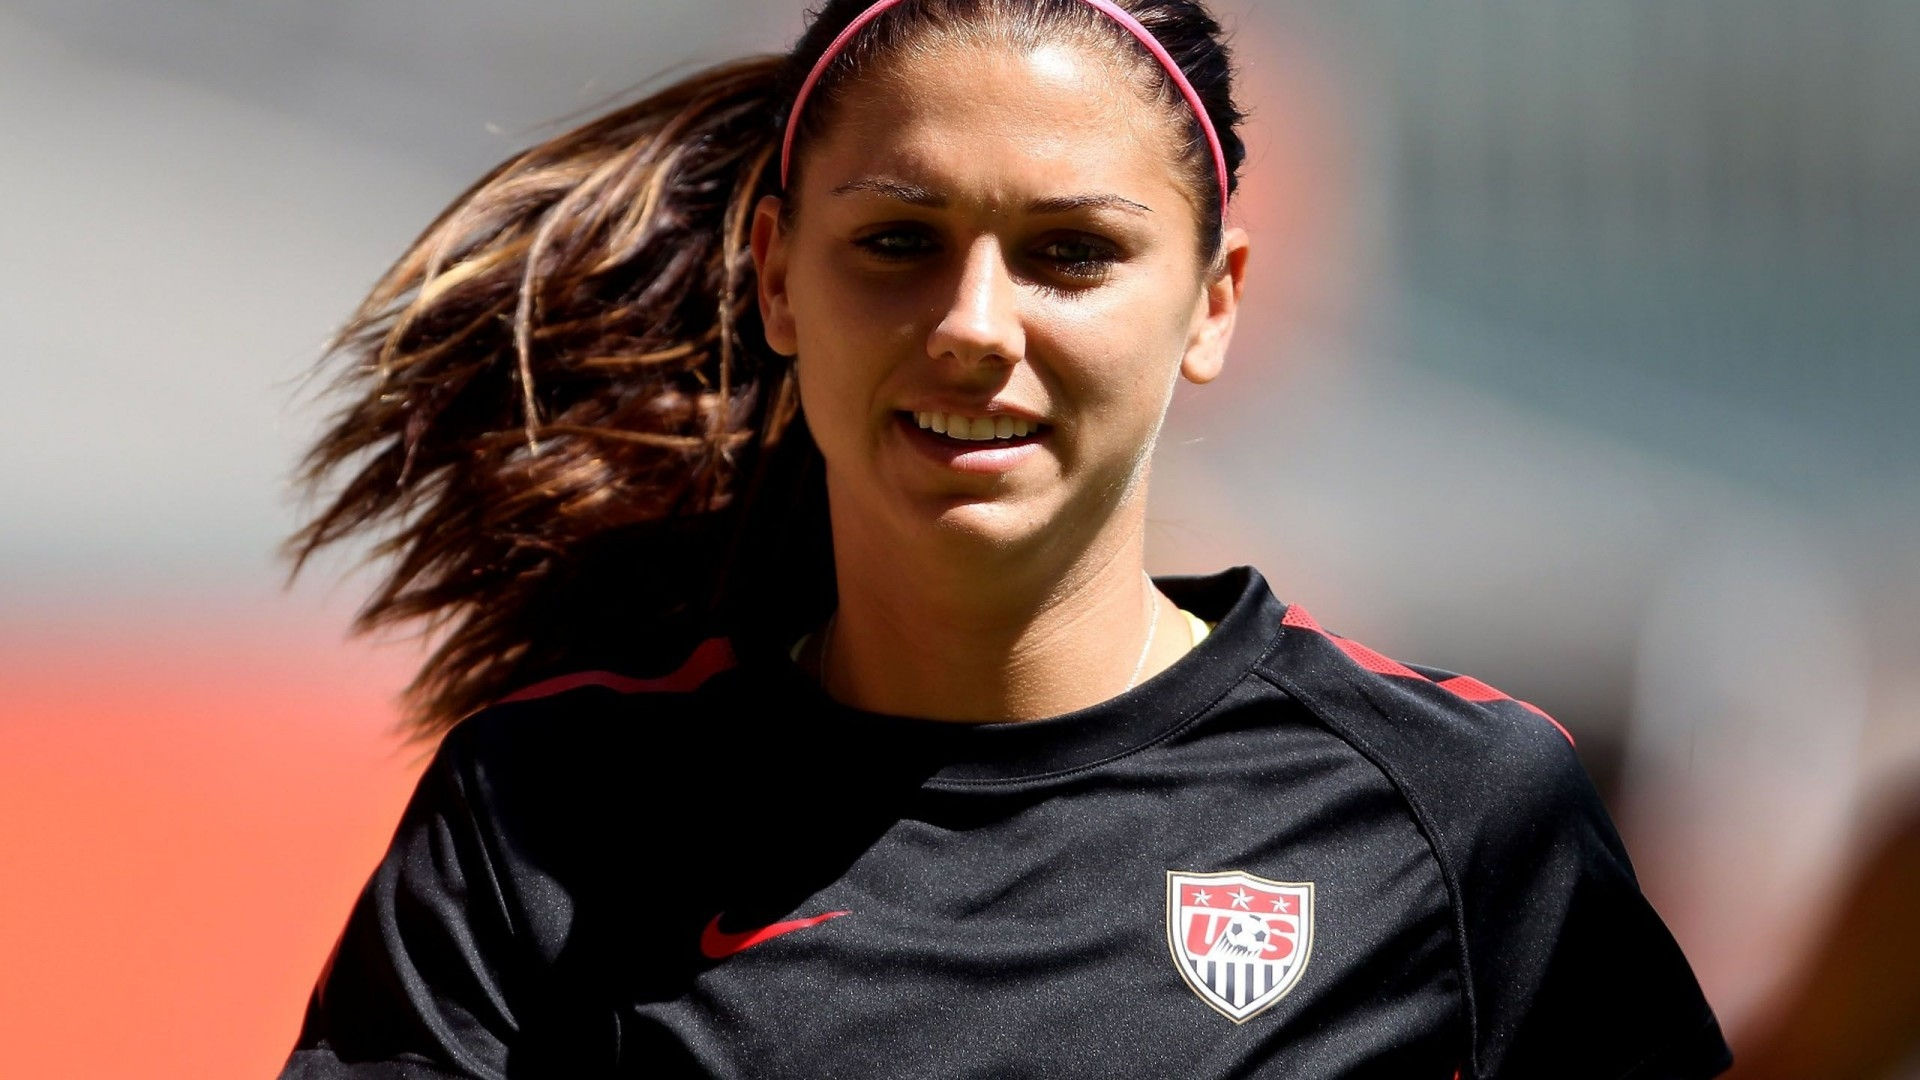 Alex Morgan Full HD Wallpaper